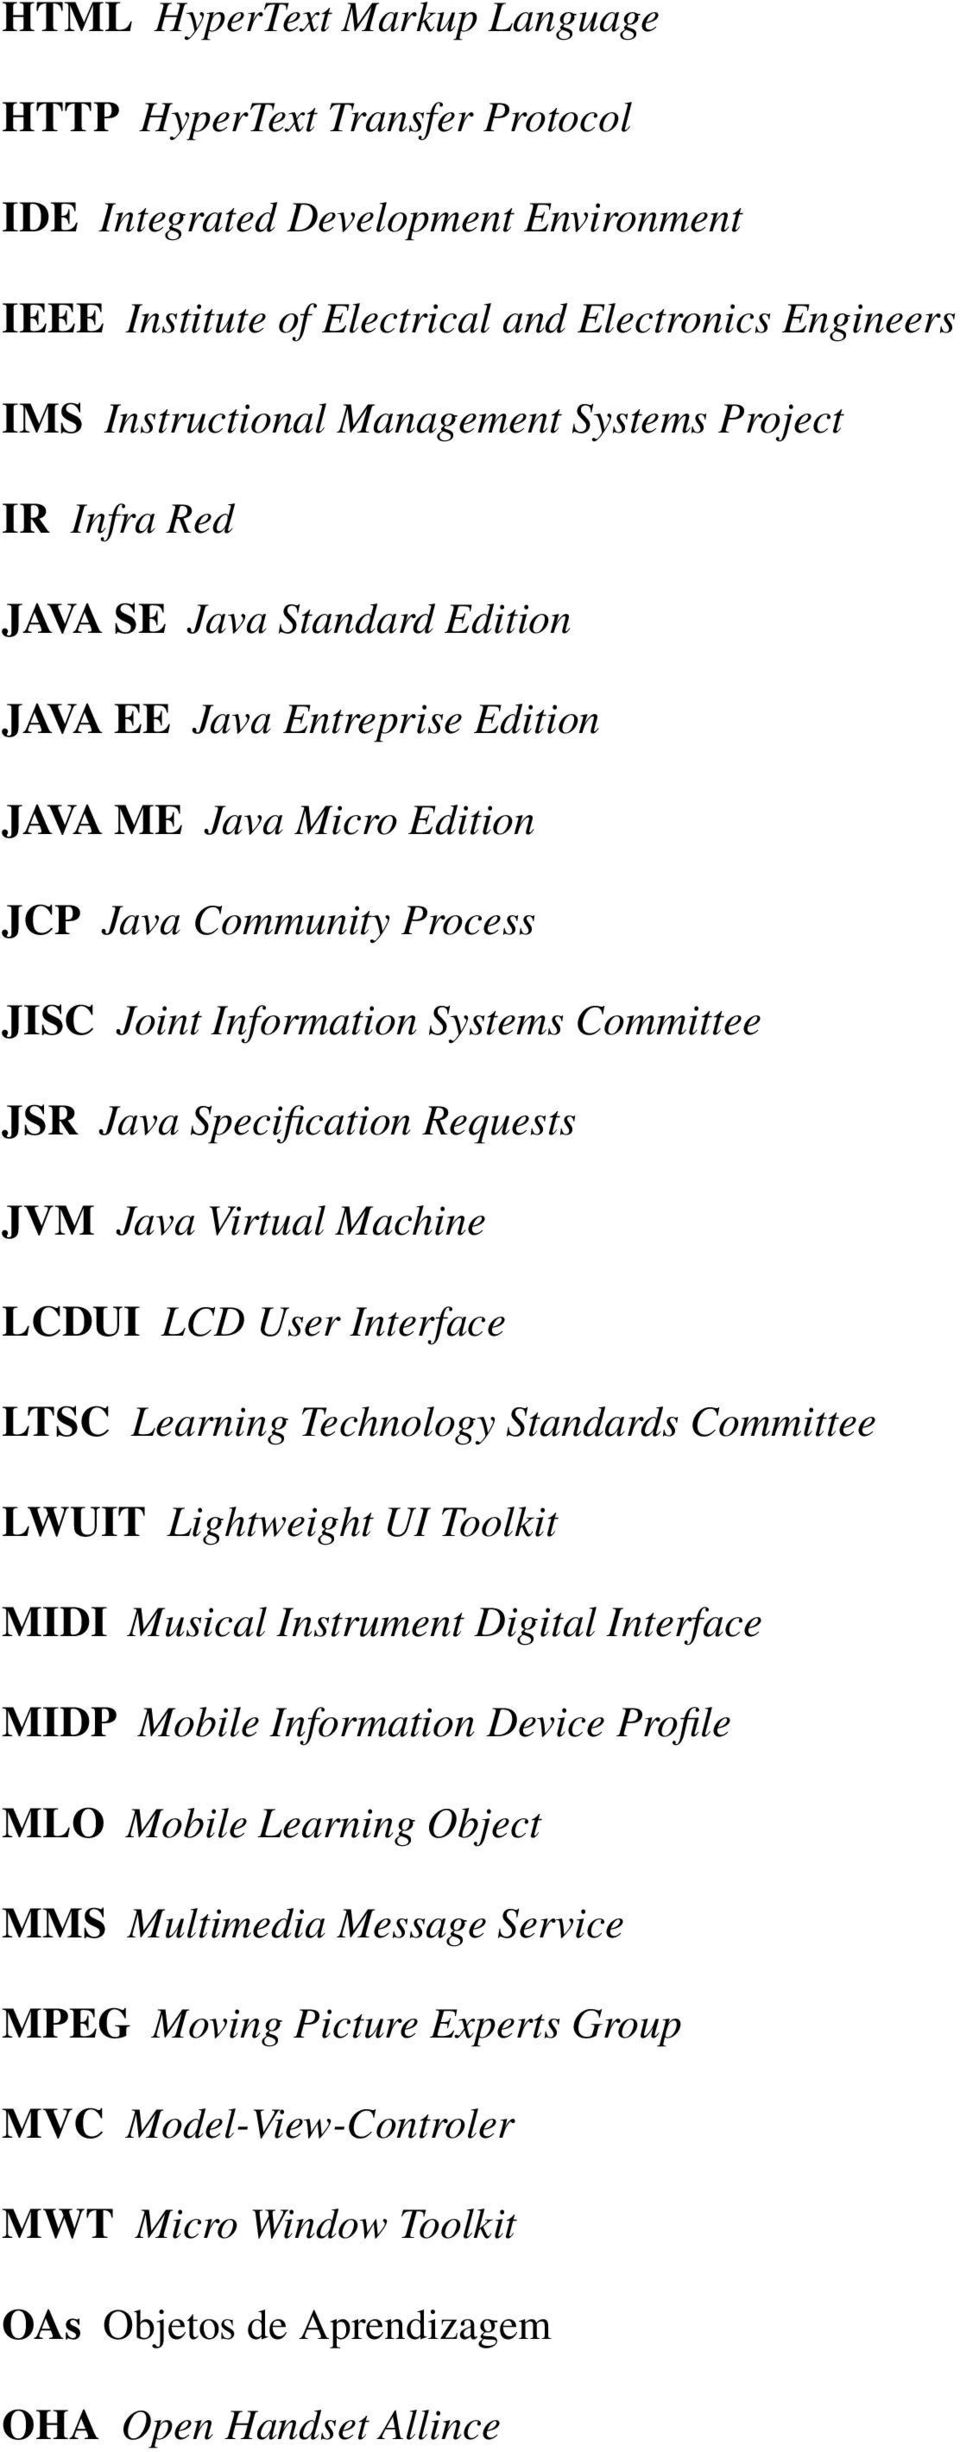 Specification Requests JVM Java Virtual Machine LCDUI LCD User Interface LTSC Learning Technology Standards Committee LWUIT Lightweight UI Toolkit MIDI Musical Instrument Digital Interface MIDP